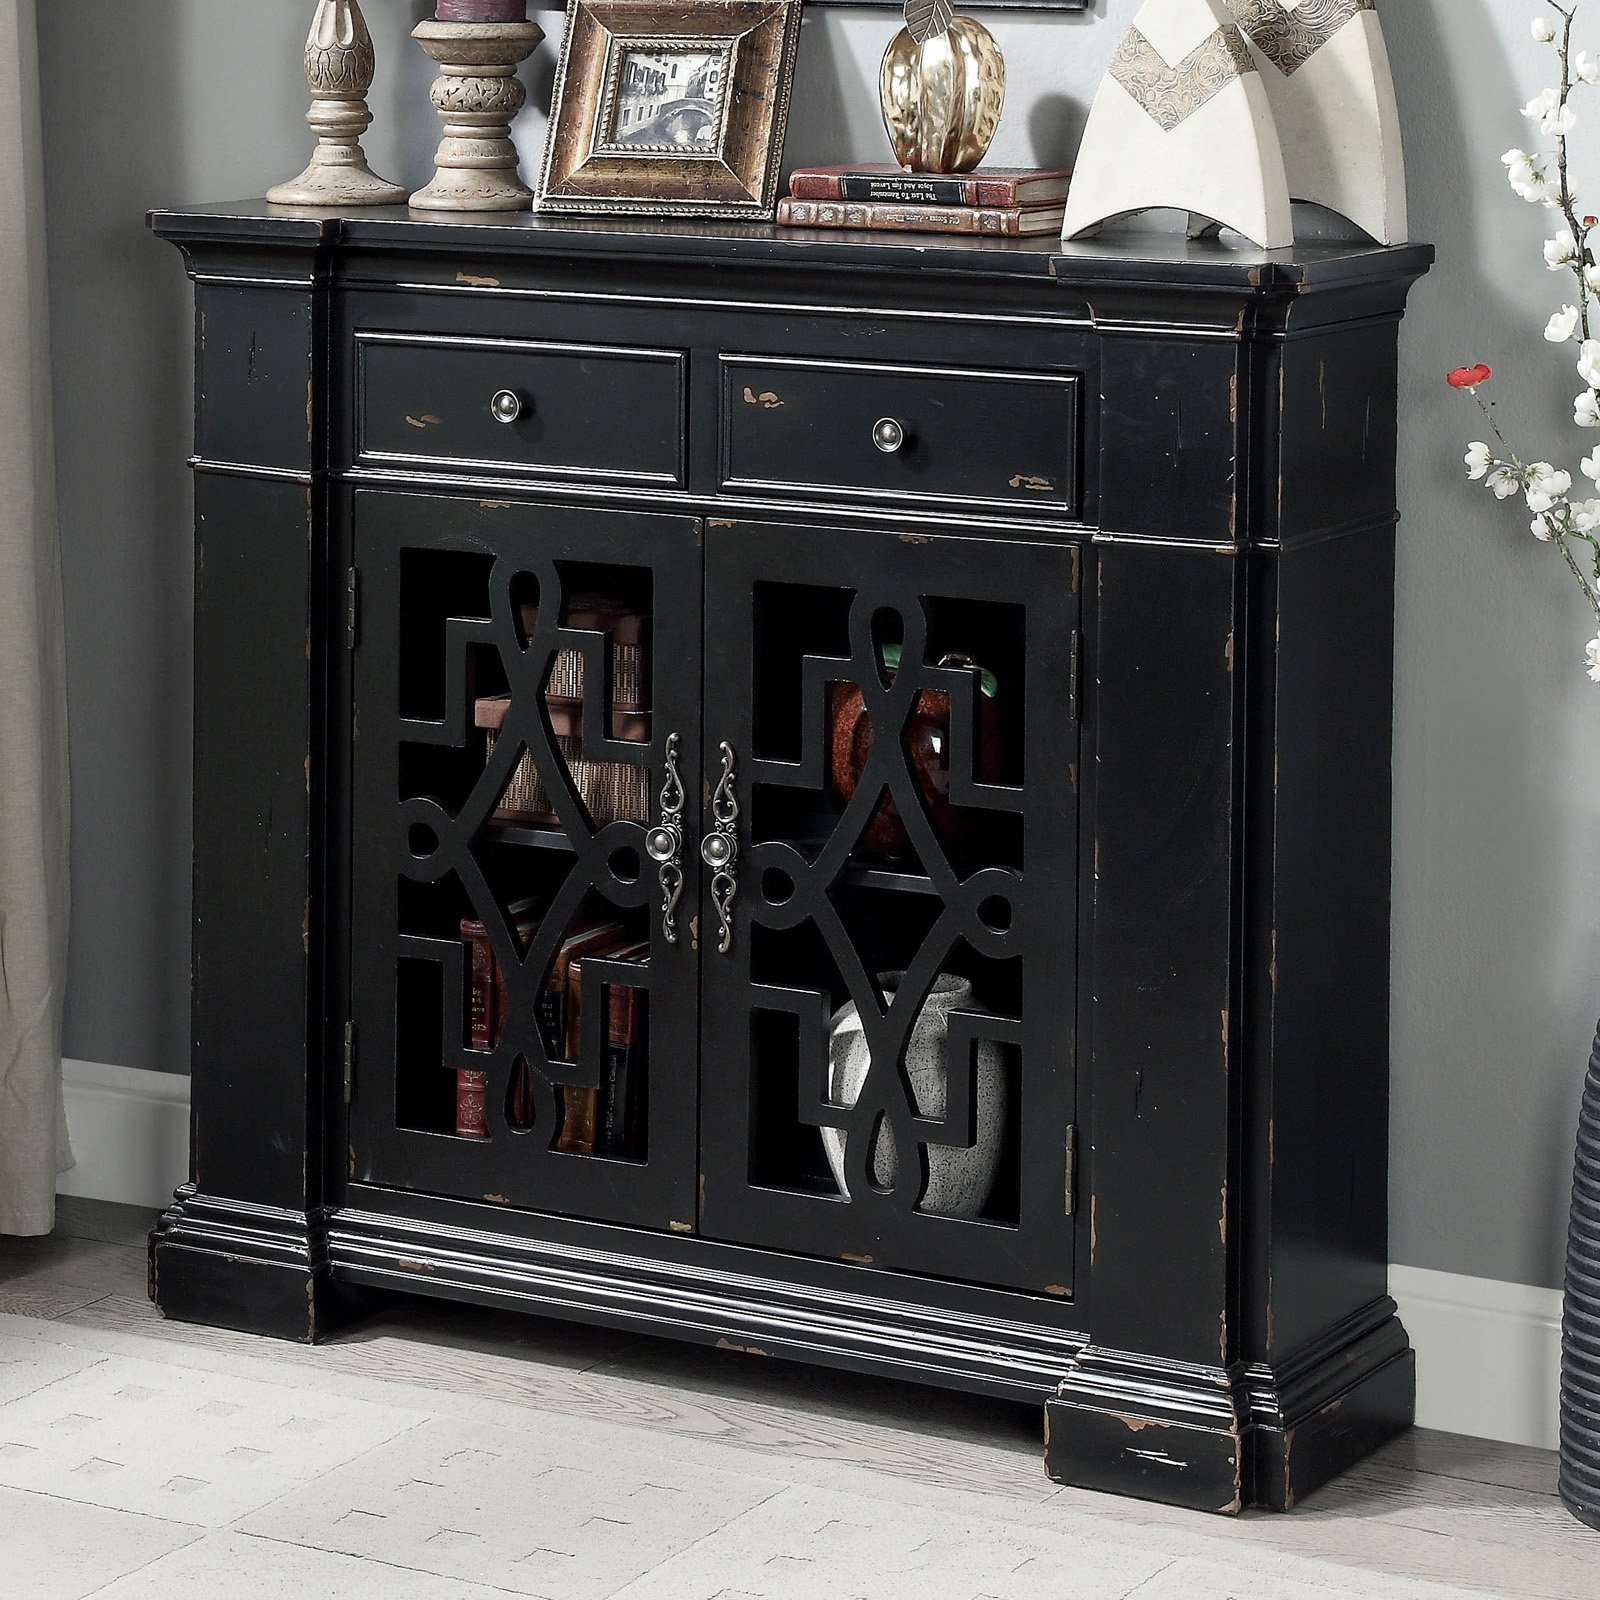 Superieur Furniture Of America Cristiano Vintage Entryway Cabinet